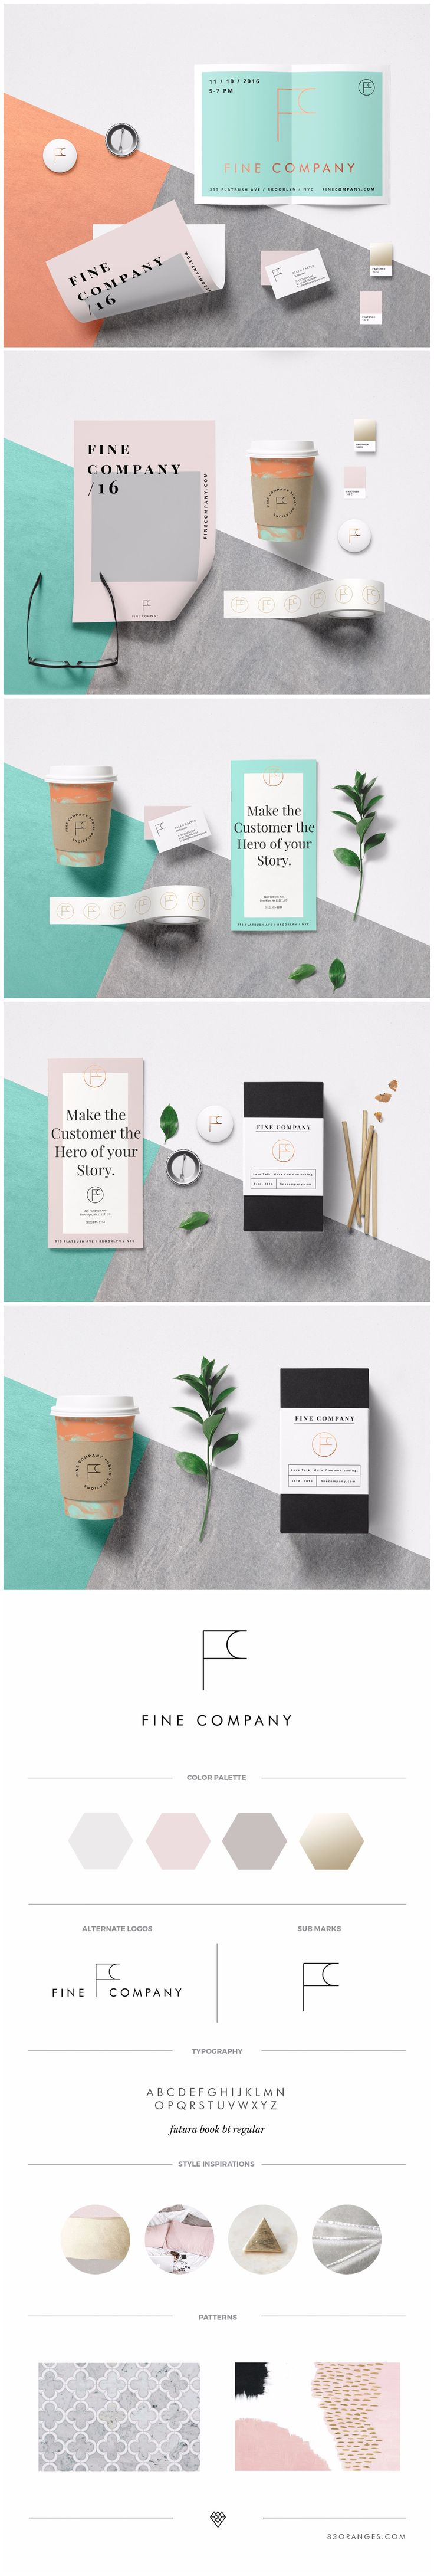 Brand Identity we designed for Fine Company, a Public Relations firm led by Tasha Anderson, serving in the lifestyle, wellness, music and fashion industries #pr #publicrelations #fashion #lifestyle #branding #brandidentity #logodesign #logo #logodesigner #companylogo #corporateidentity